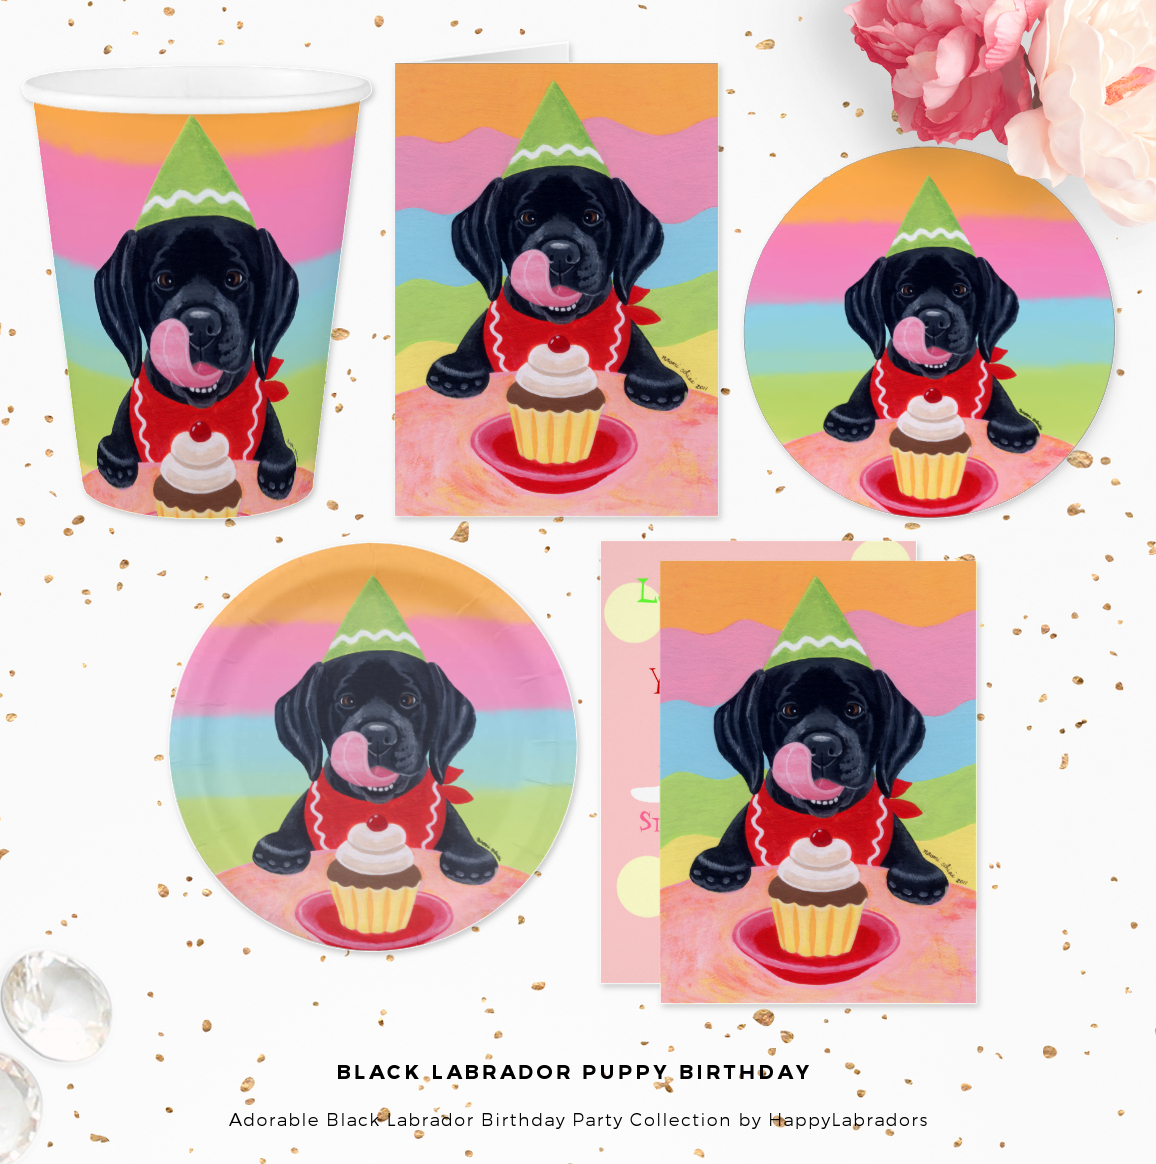 Black Labrador Puppy Birthday Party Collection by HappyLabradors